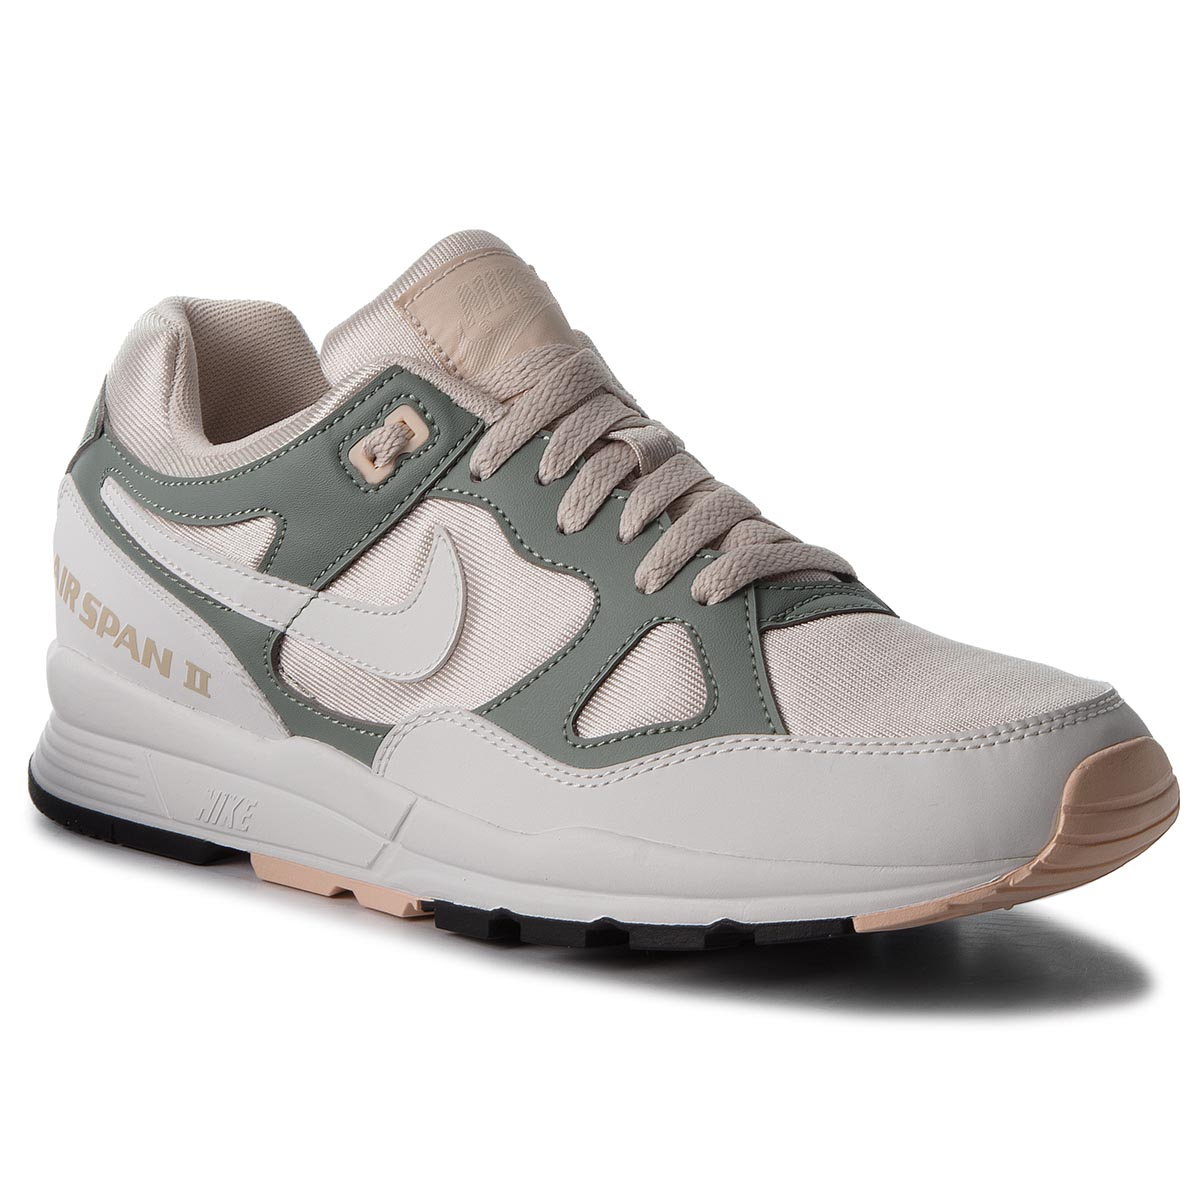 pretty nice 27c0d 615b6 Shoes NIKE Air Span II AH6800 004 Desert Sand Summit White